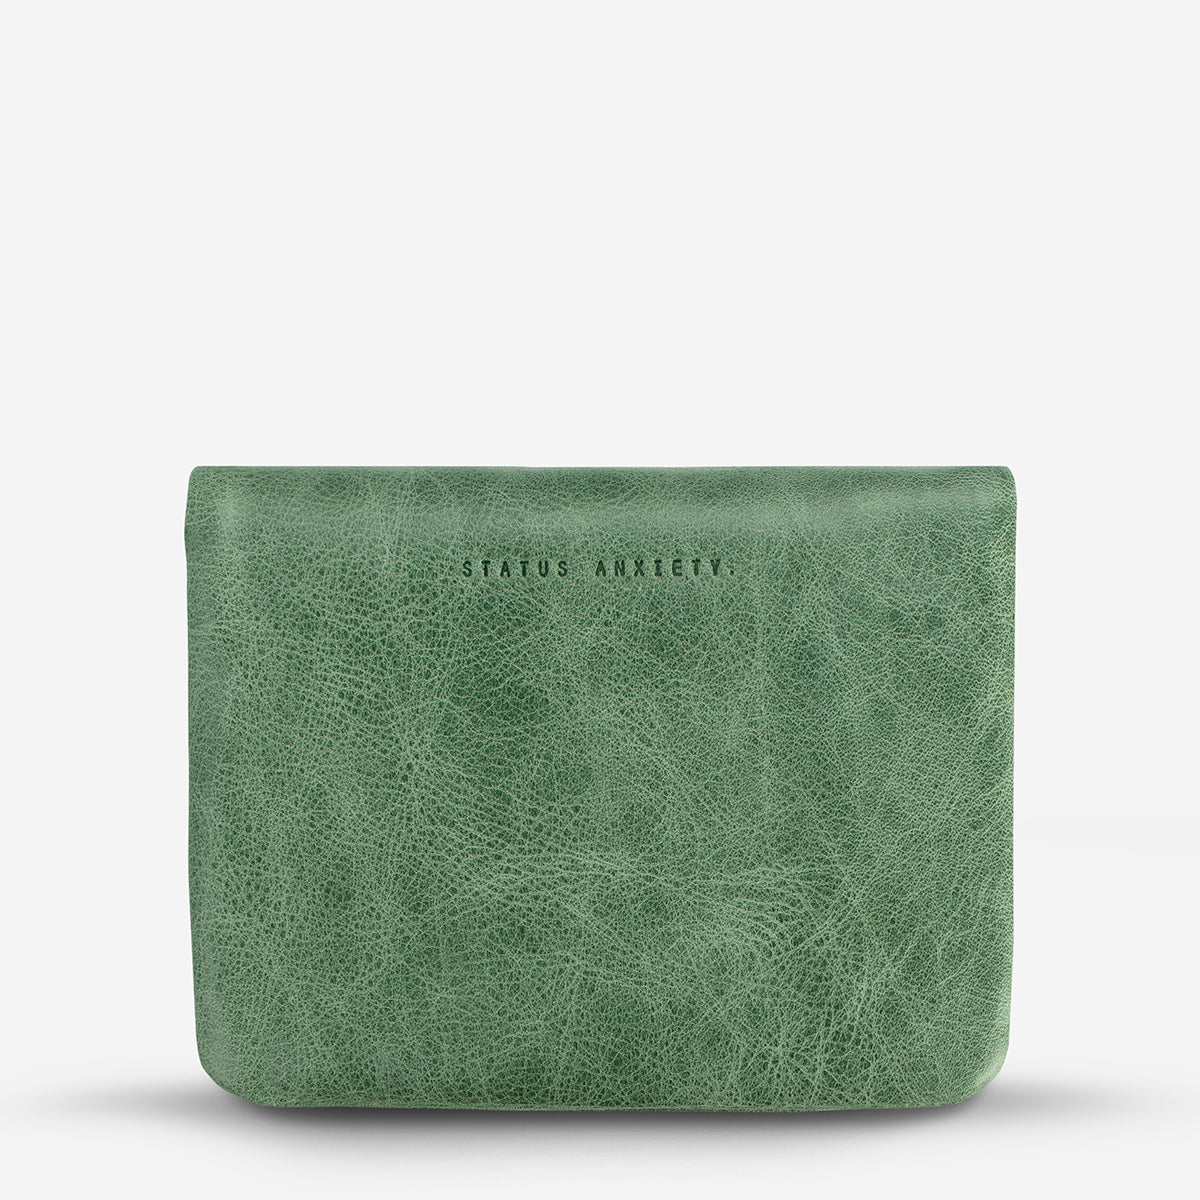 Status Anxiety Norma Women's Leather Wallet - Emerald